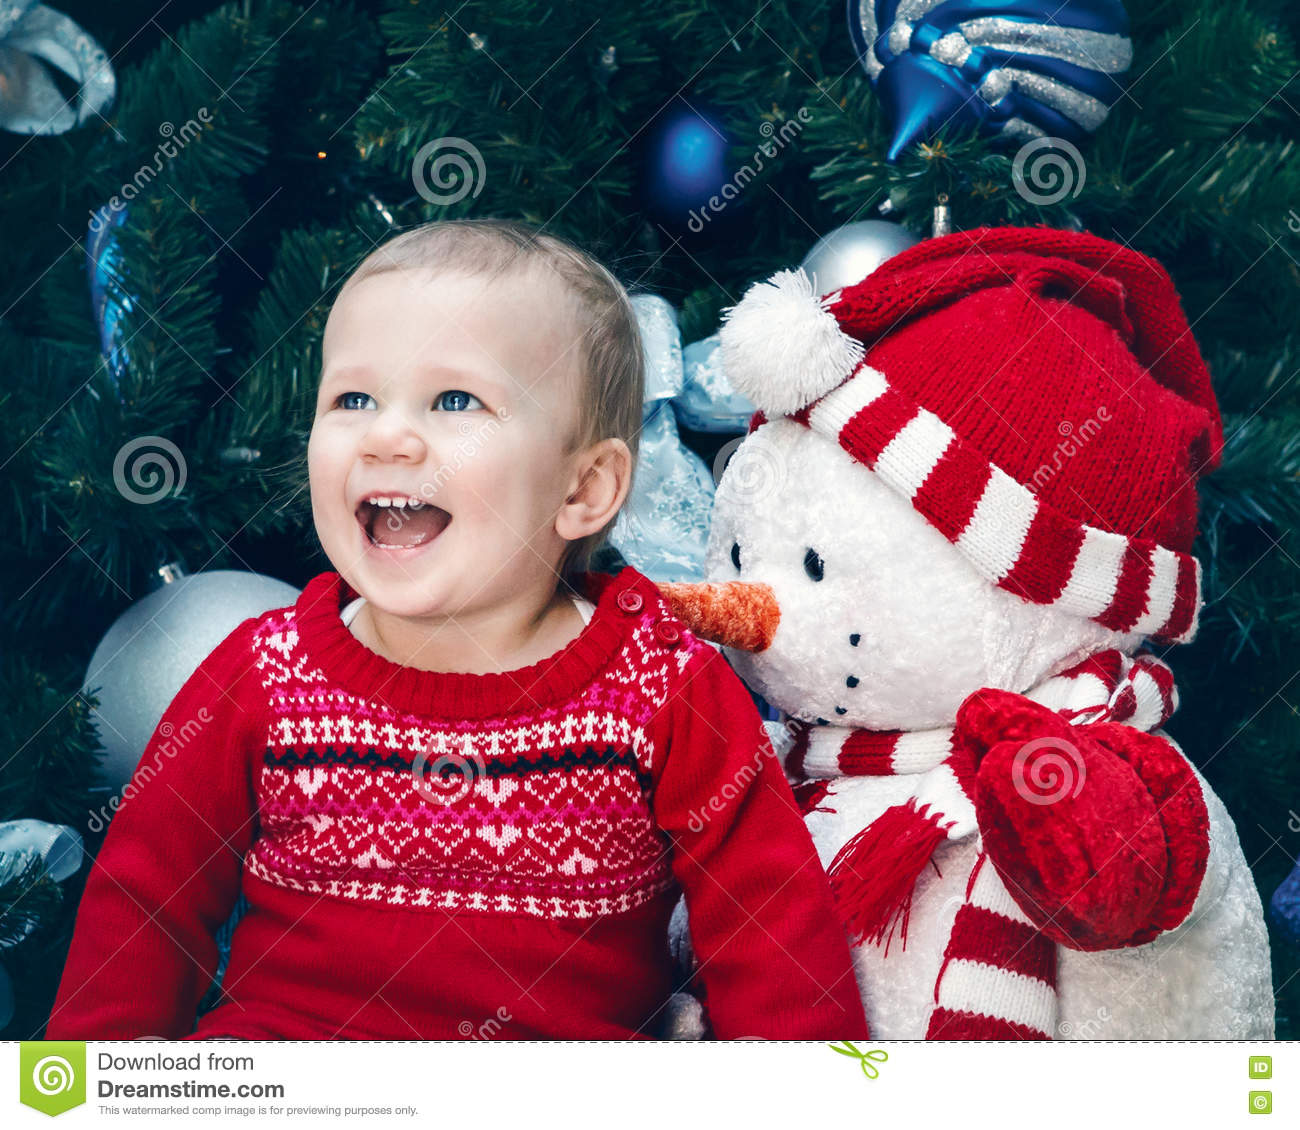 0c04bbdf9 Baby Girl Toddler With Blue Eyes In Red Dress Sitting By New Year ...